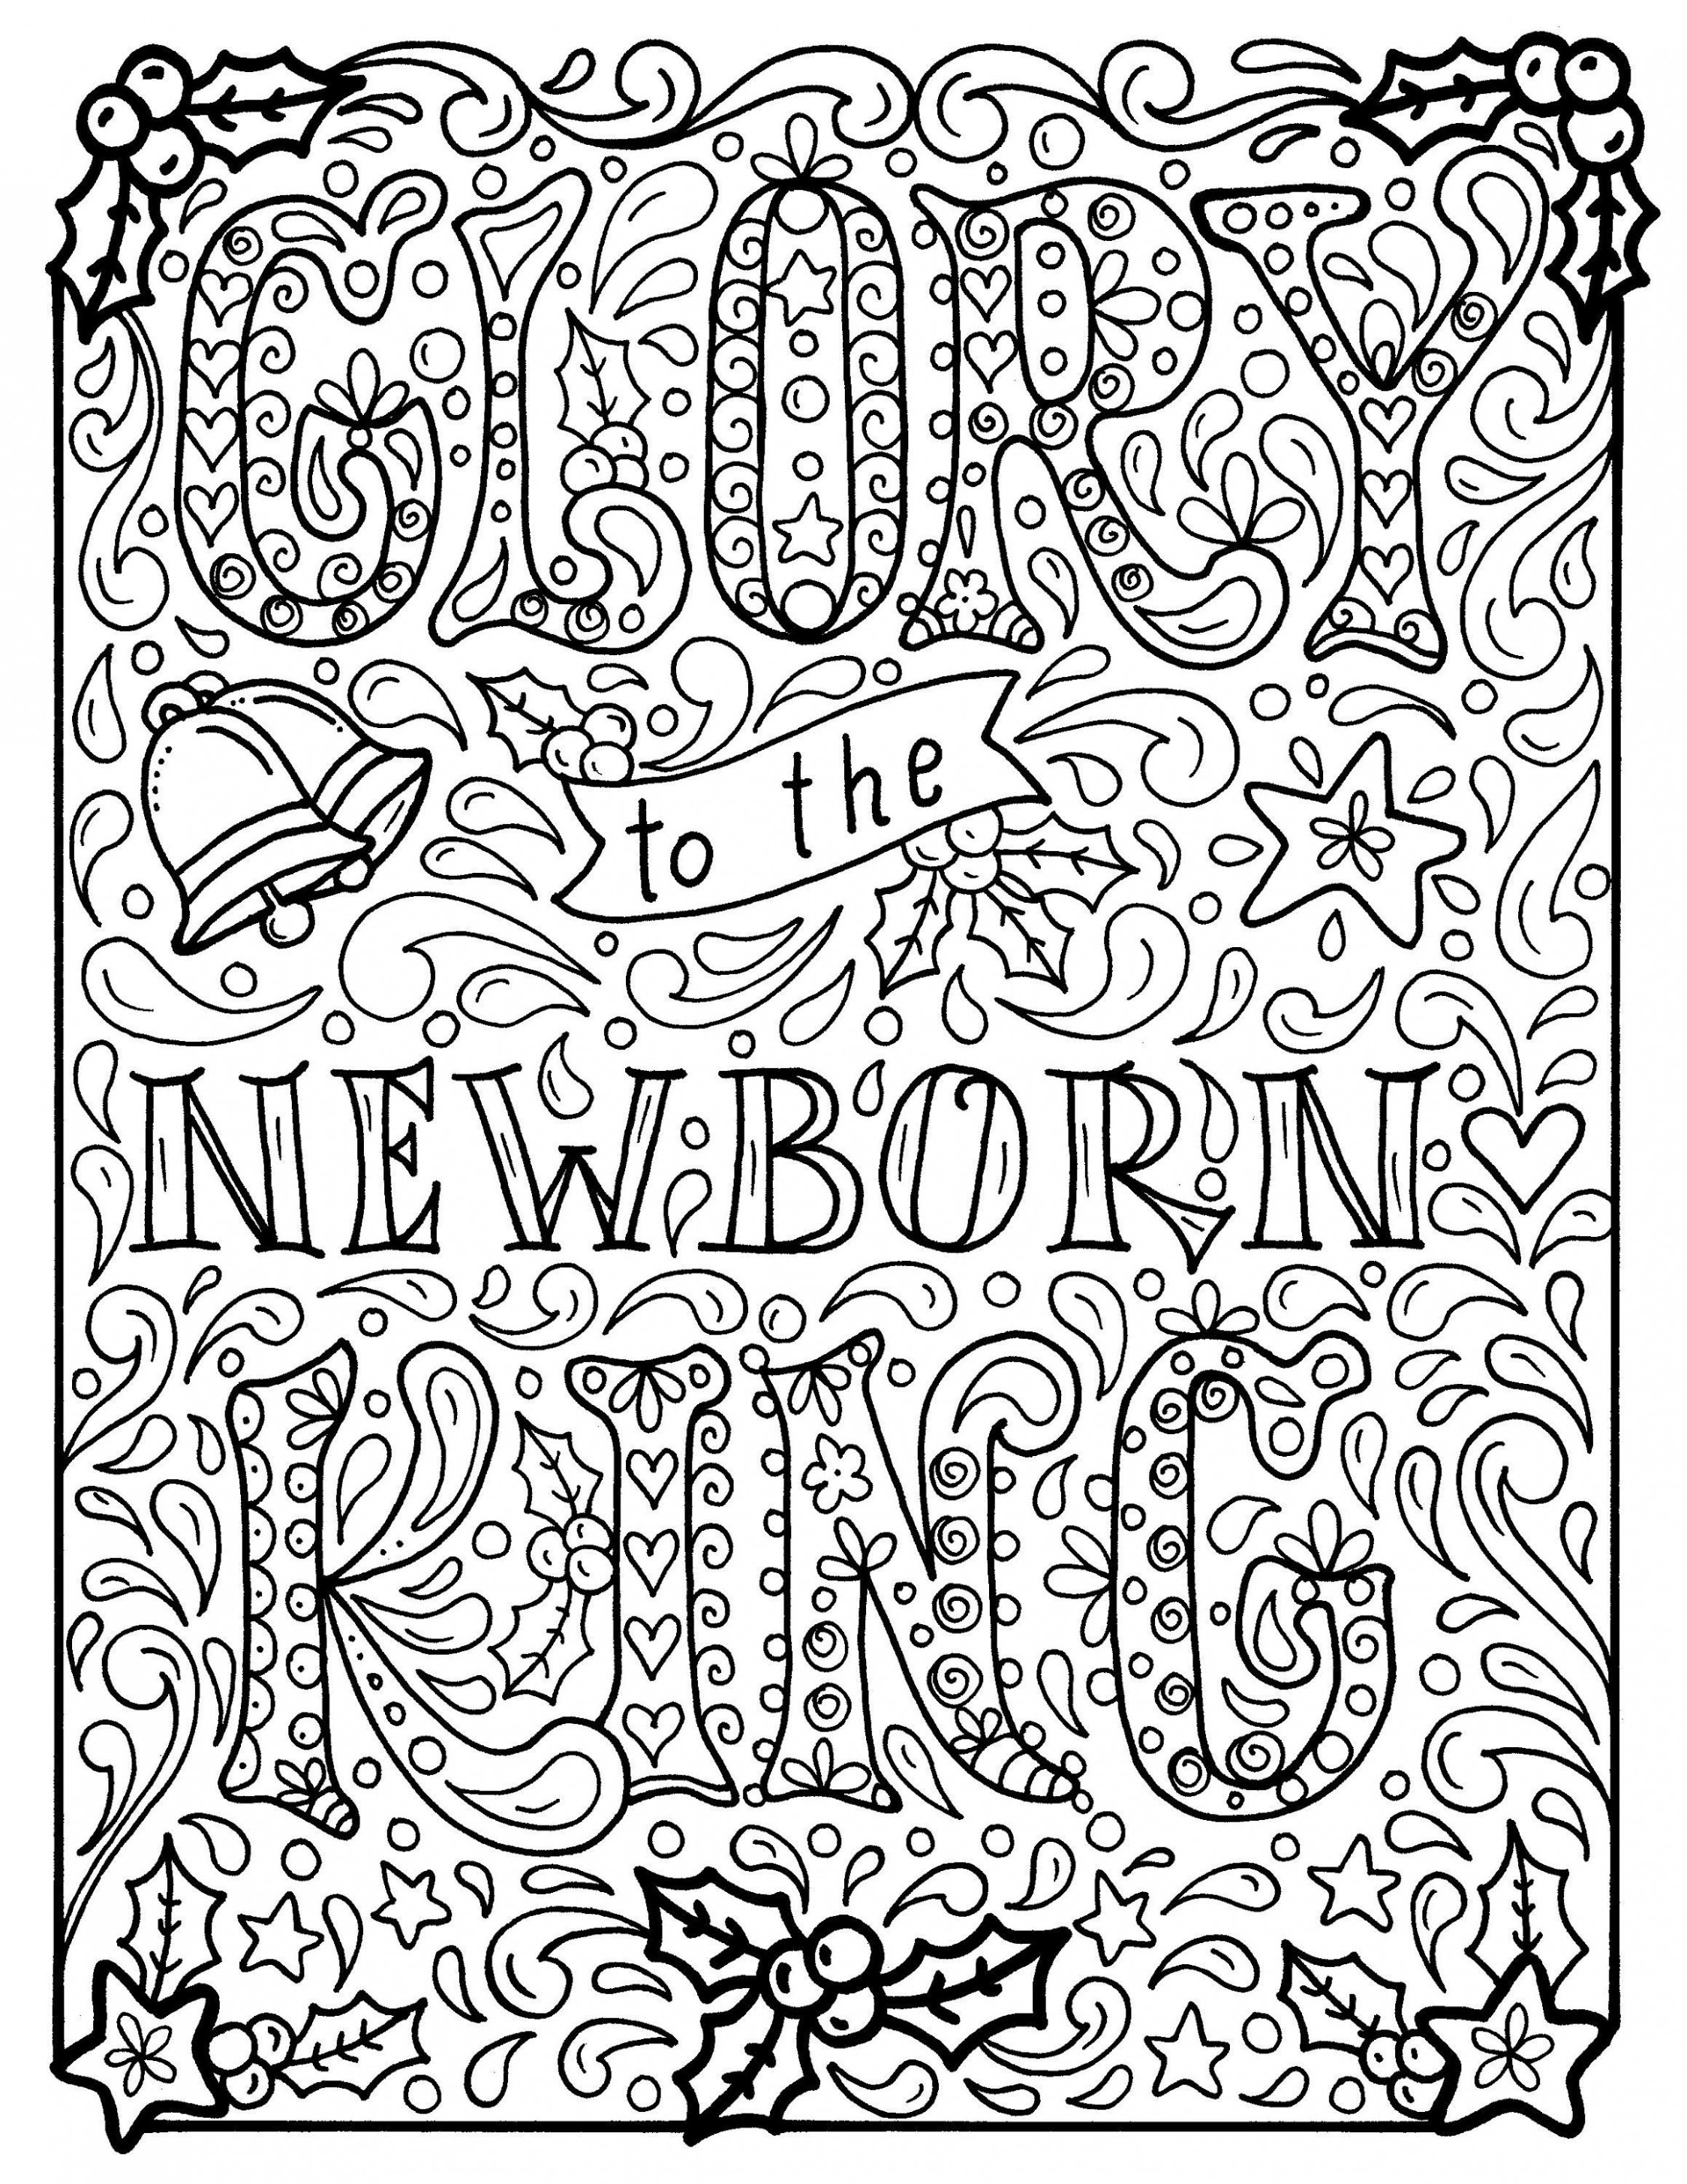 Christian Christmas Coloring page, Church, Scripture, Bible, Adult ..